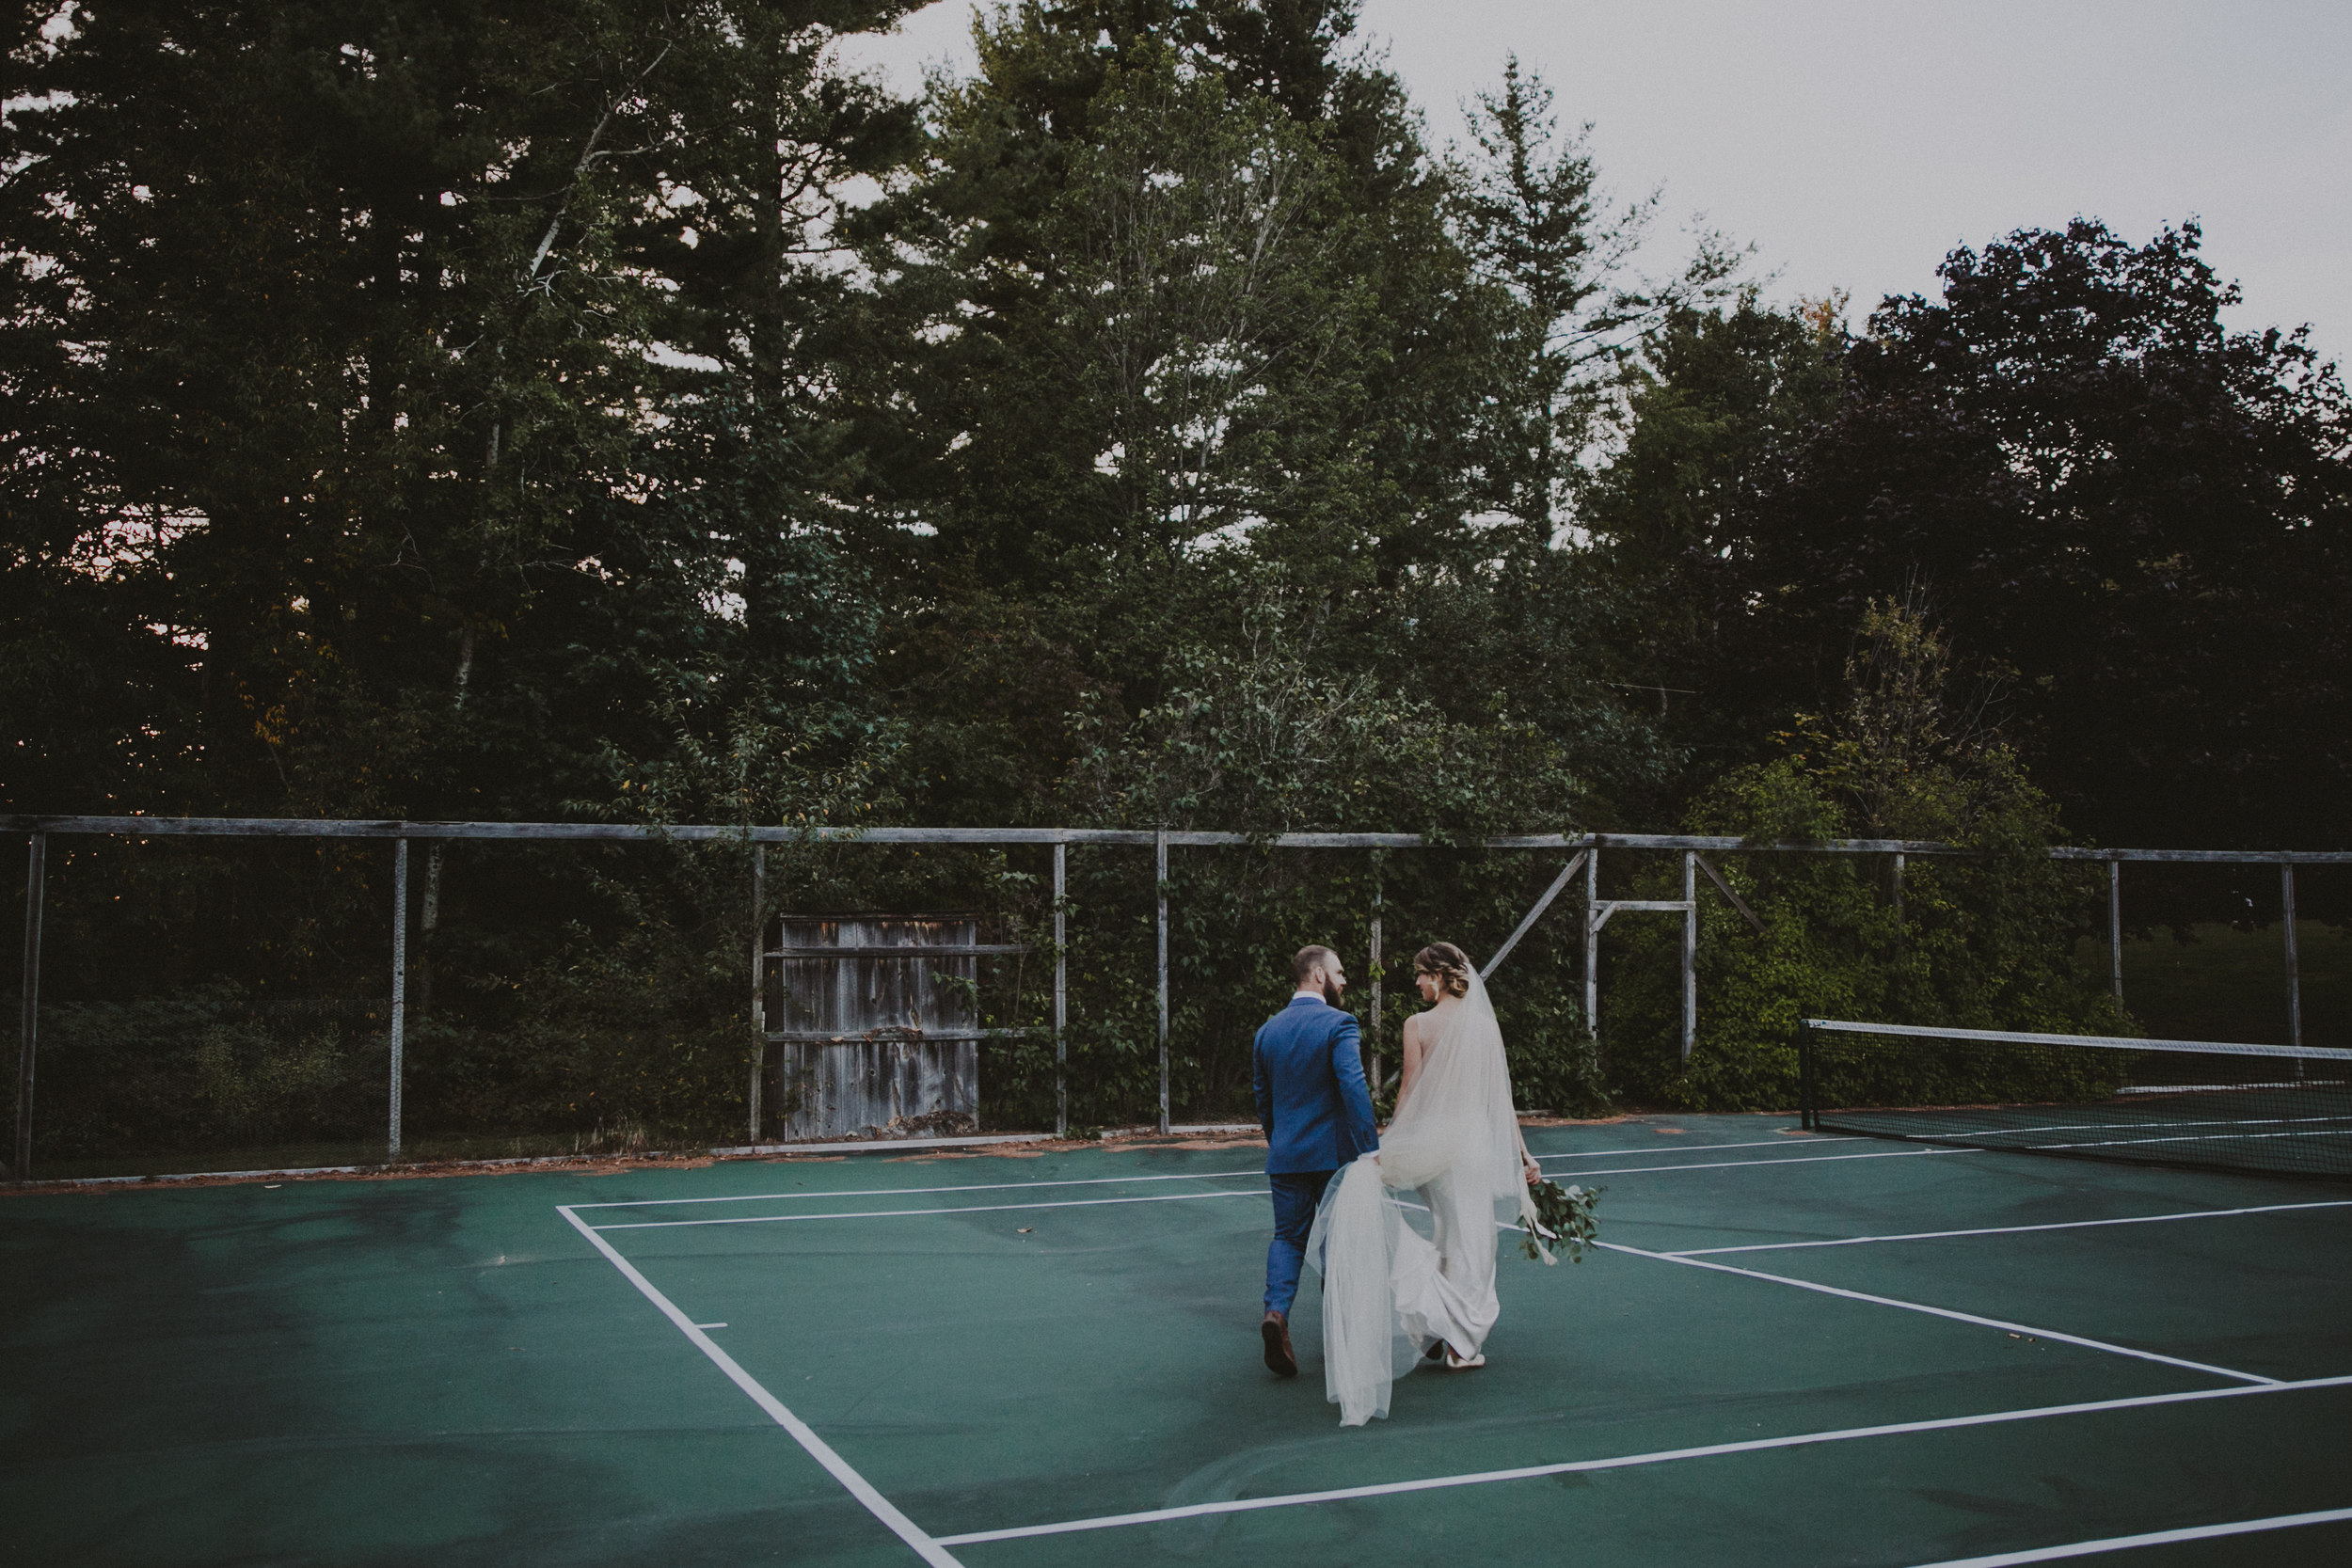 windsor mountain summer camp wedding NH chellise michael photography 1818.jpg